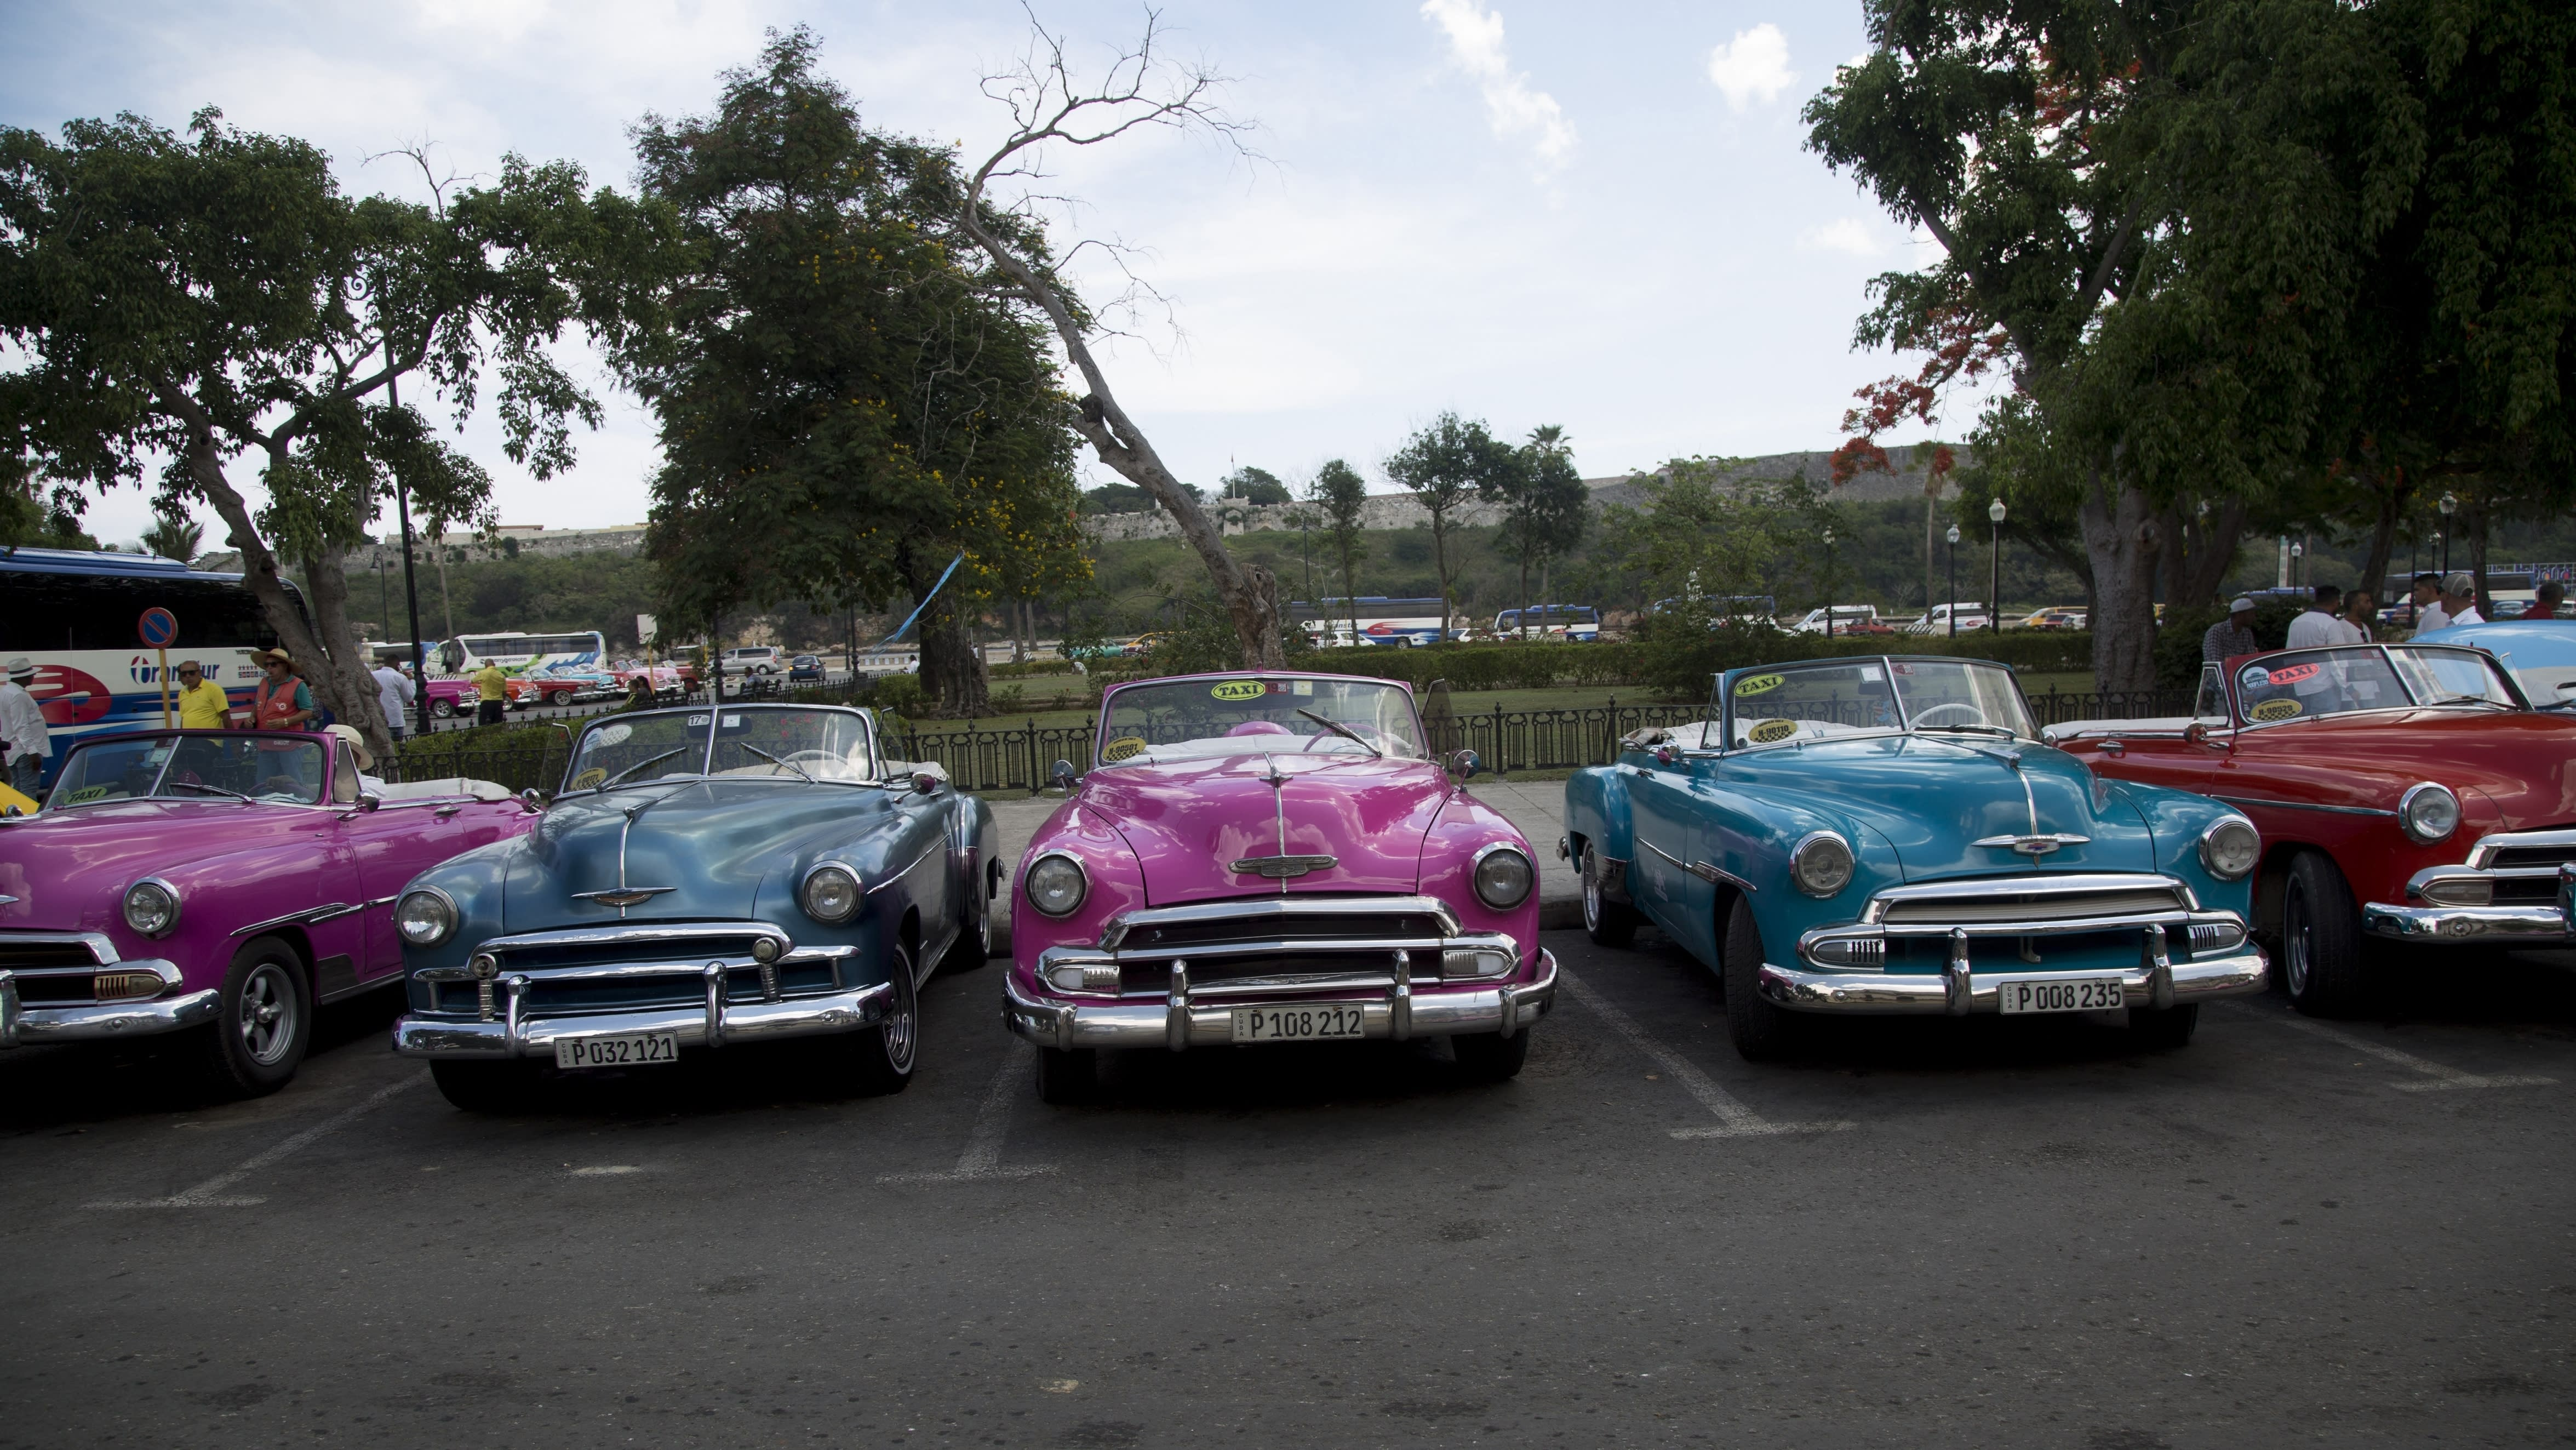 Classic American cars sit parked as their drivers await tourists in Havana, Cuba, Wednesday, June 5, 2019. Drivers of classic cars, owners of private restaurants, guides, handicrafts vendors and owners of rooms for rent will be among the most affected by the Trump administration's new restrictions on travel to Cuba. (AP Photo/Ismael Francisco)